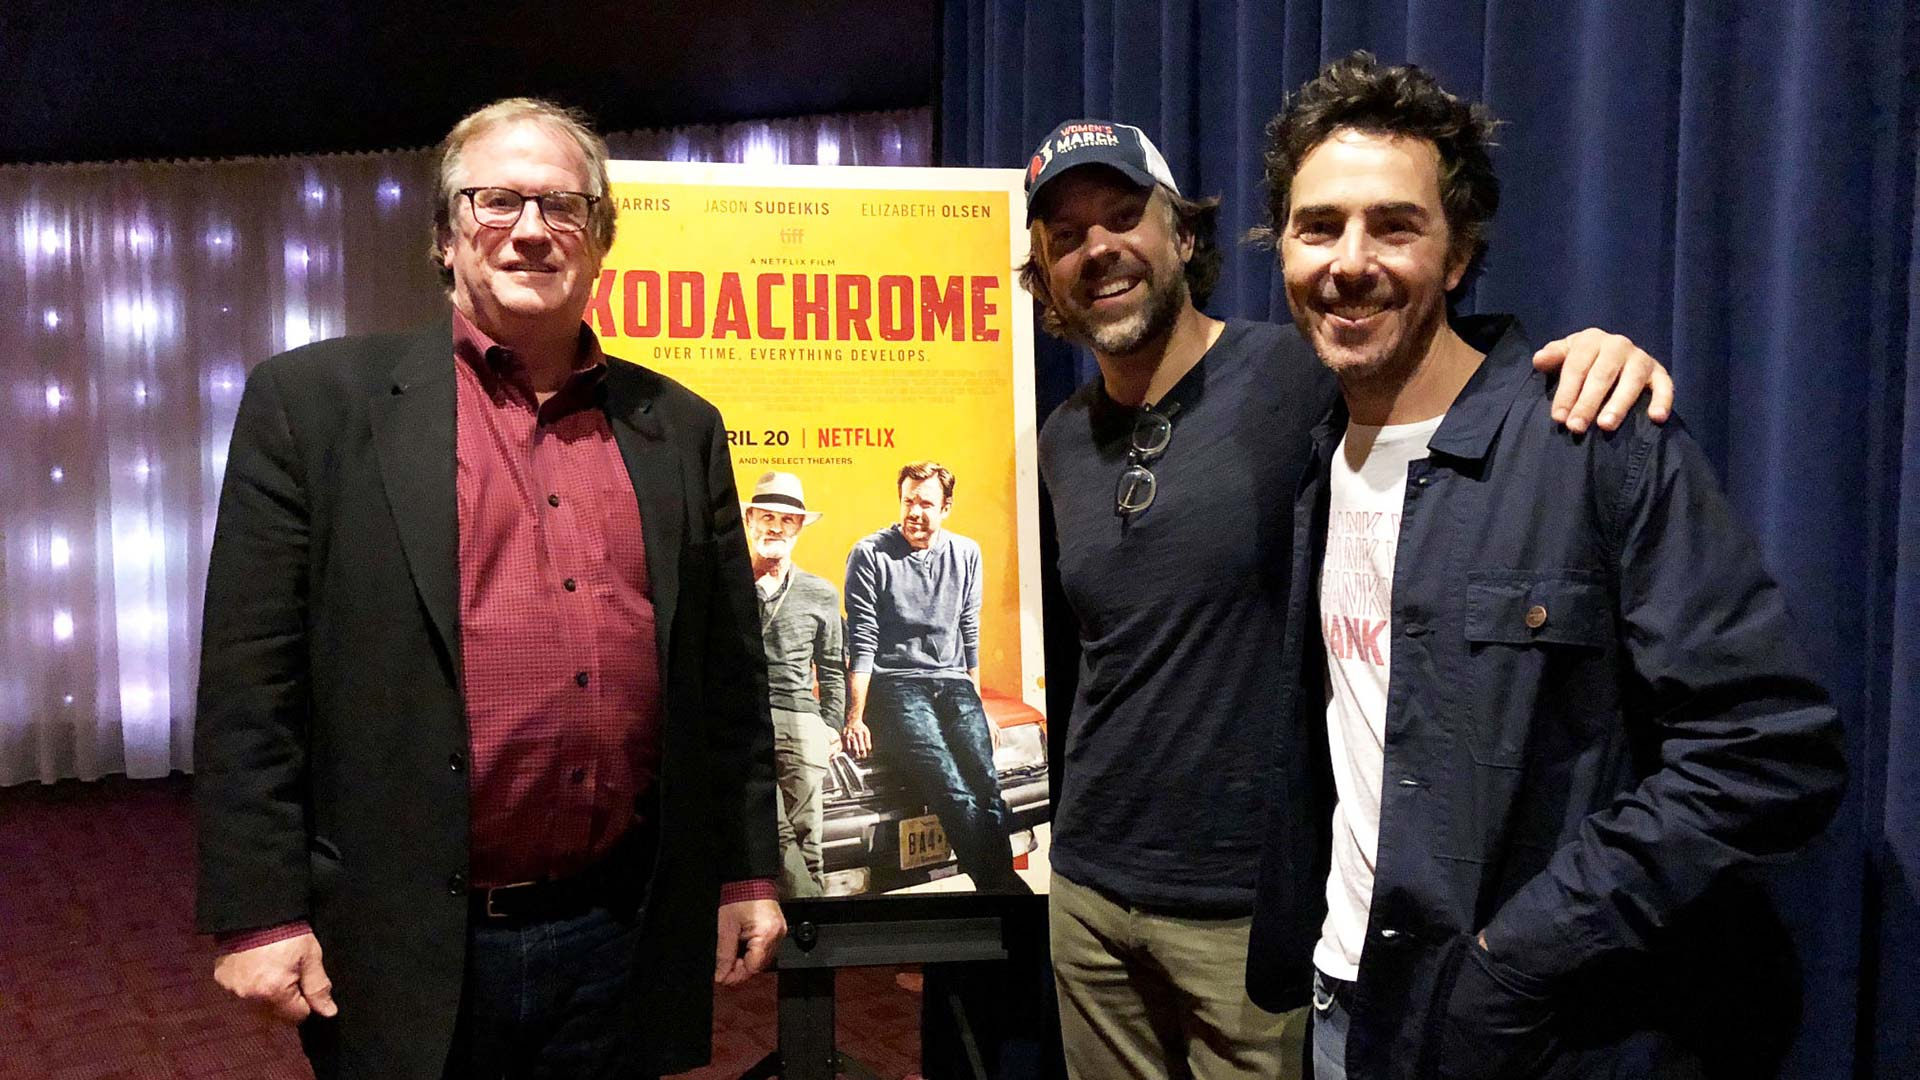 kodachrome screening